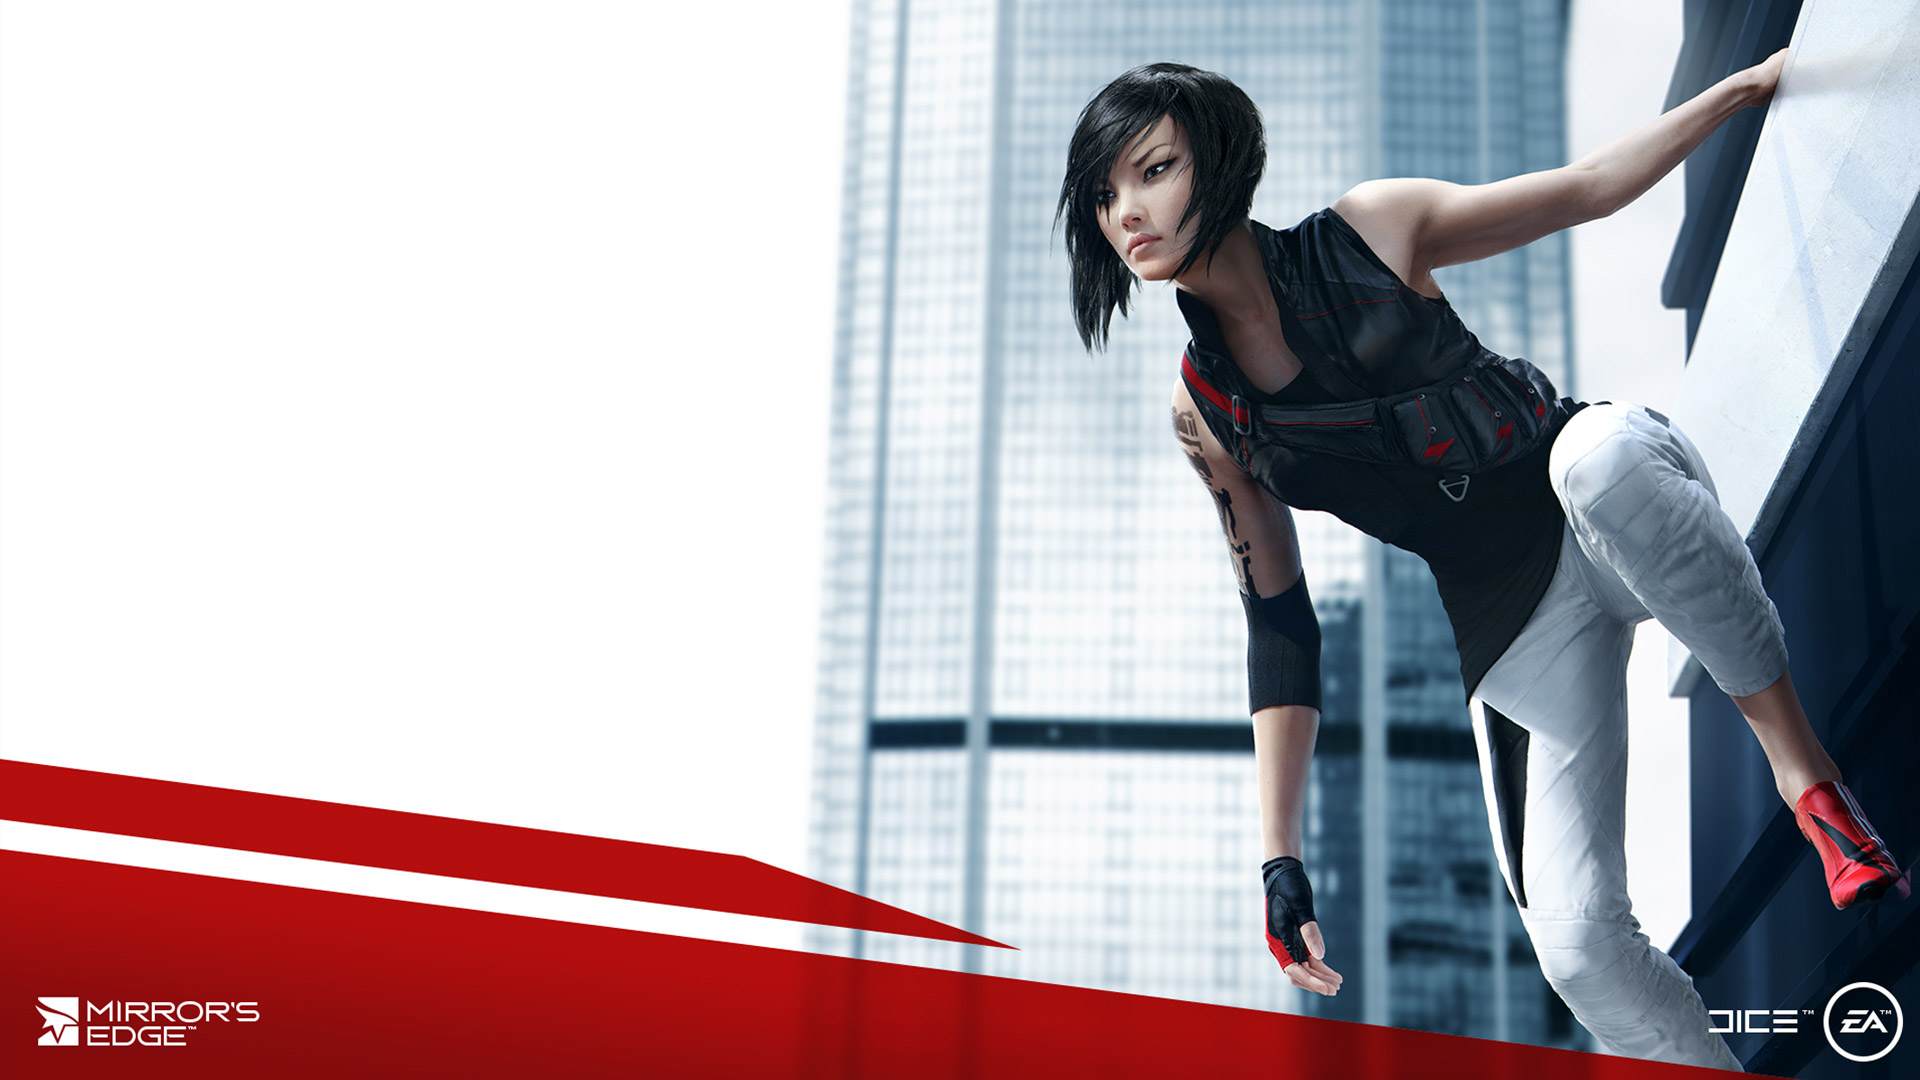 Mirrors Edge 2 wallpaper 2